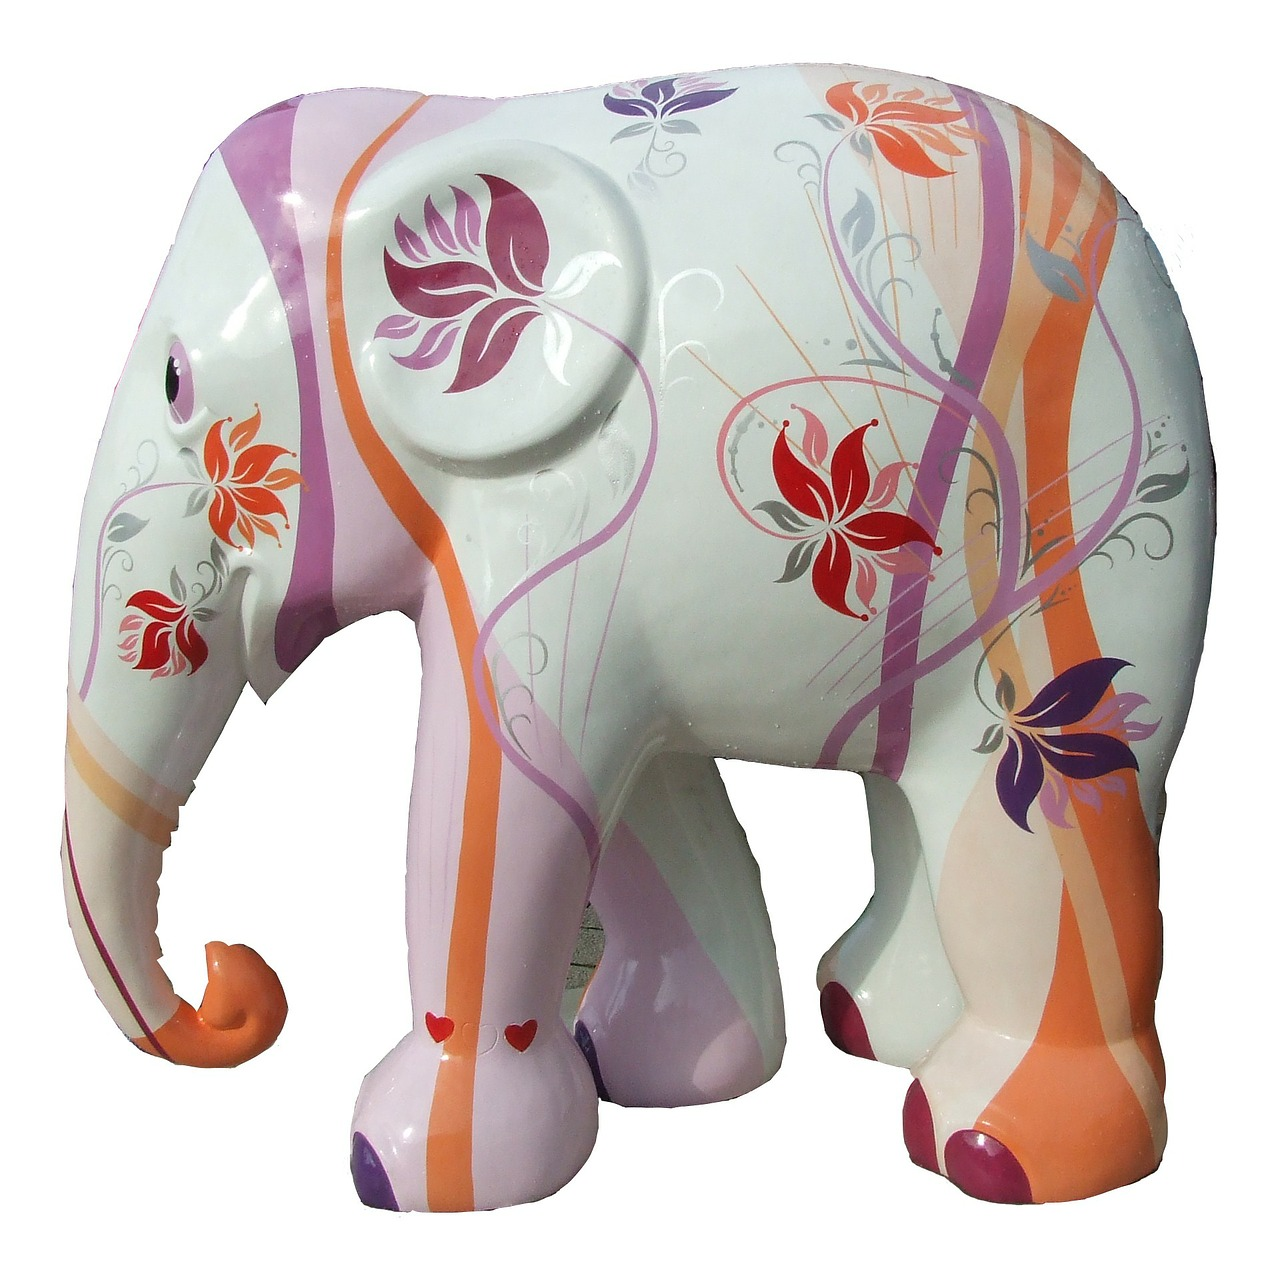 elephant parade trier elephant art free photo